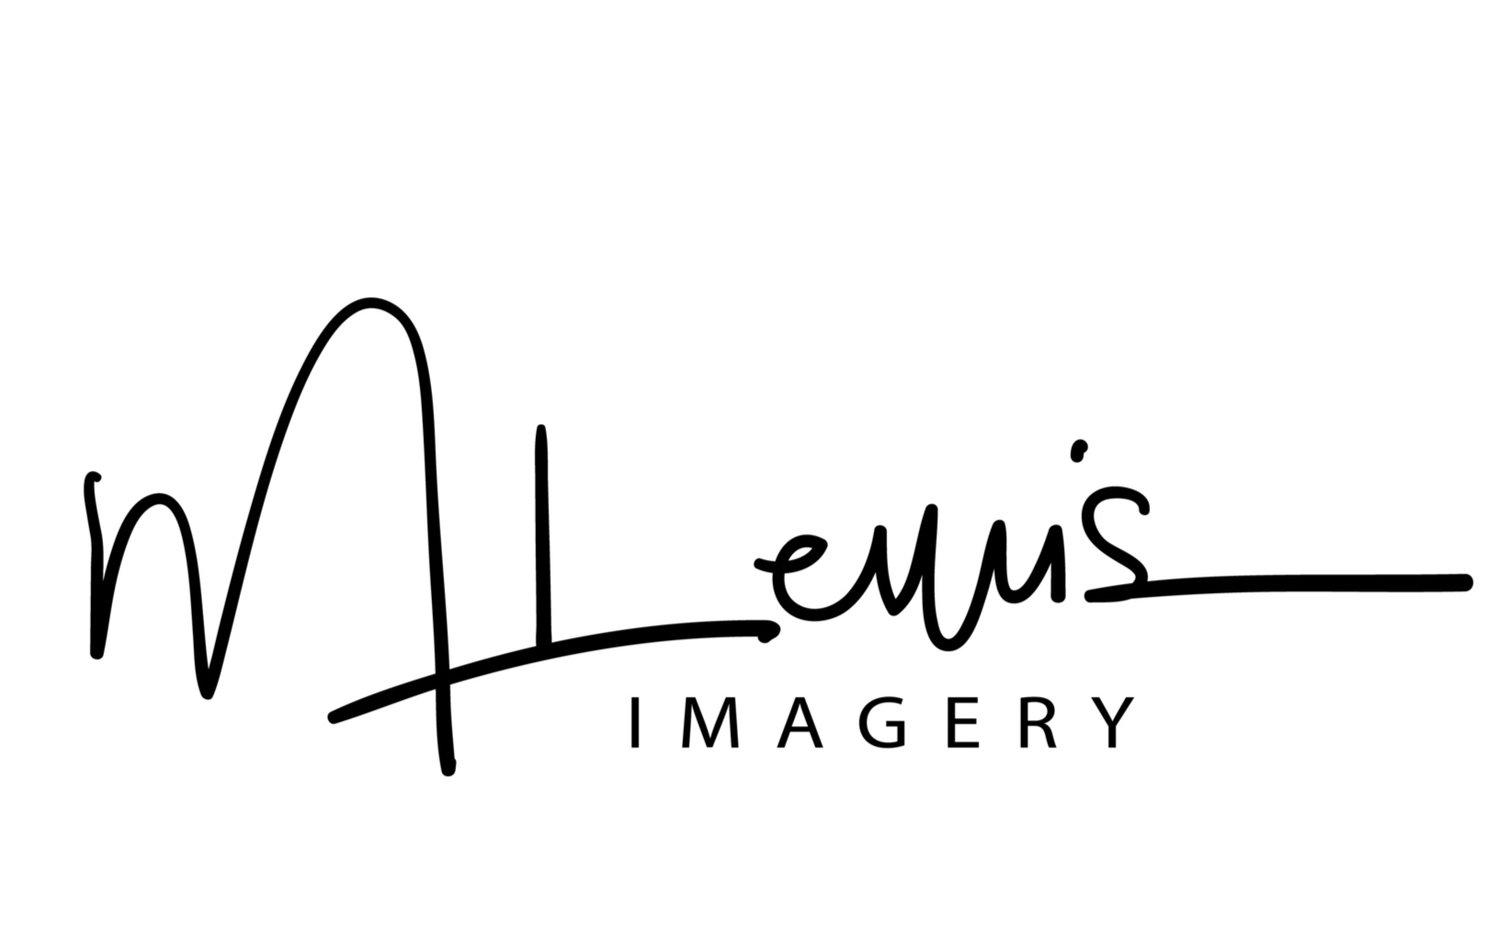 M. Lewis Imagery